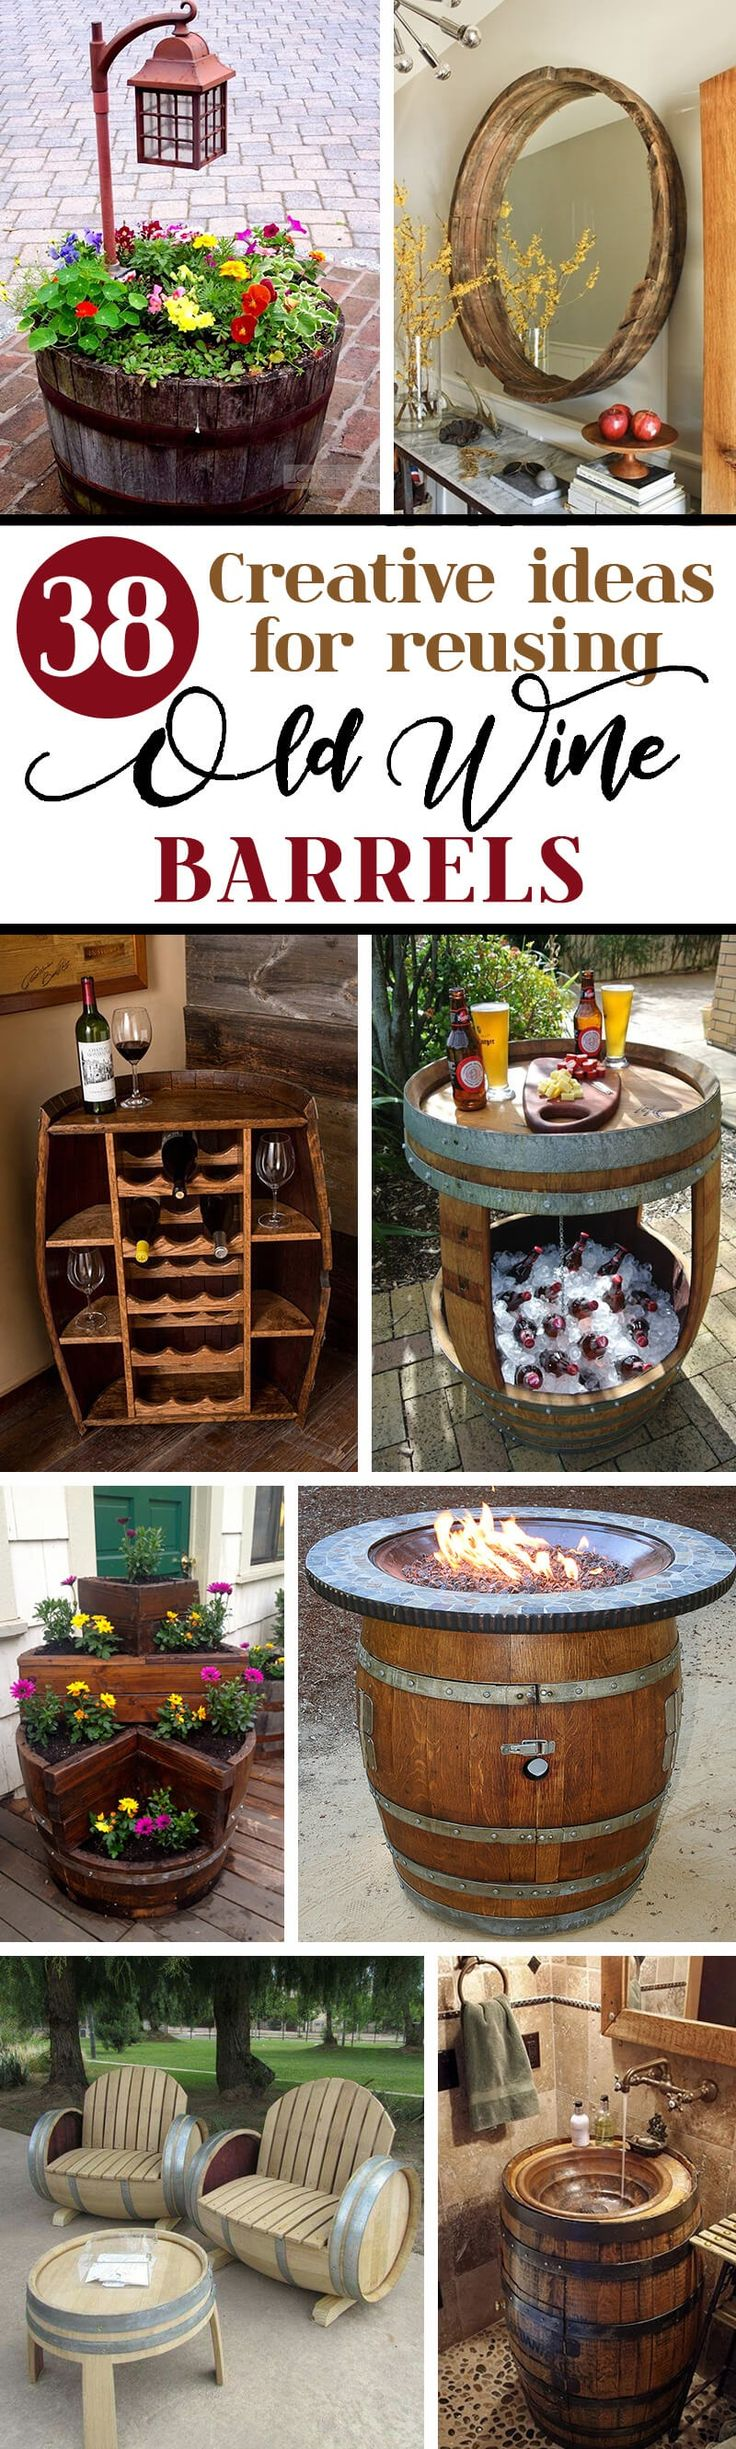 Wine barrels aren't just for old-timey merchant ships and artisanal vineyard retreats; designers and interior trendsetters alike are reusing old wine barrels for a variety of stylish purposes, from tables to planters to ingeniously repurposed bars. The beauty of wine barrels lies in their u...